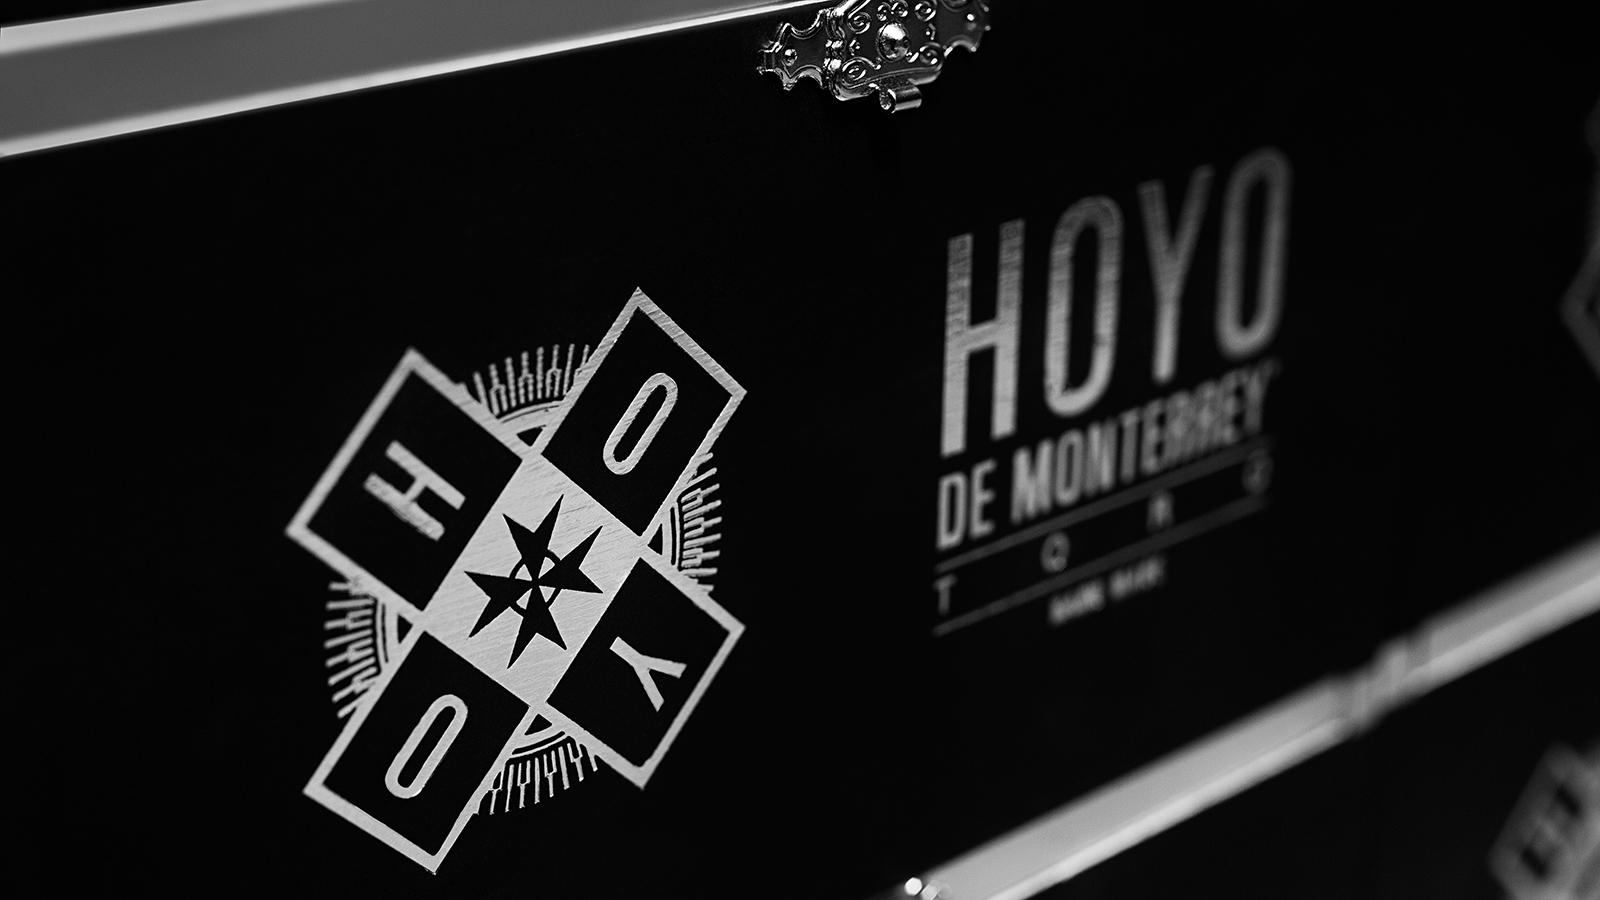 General's Modern Hoyo Comes To Market In March